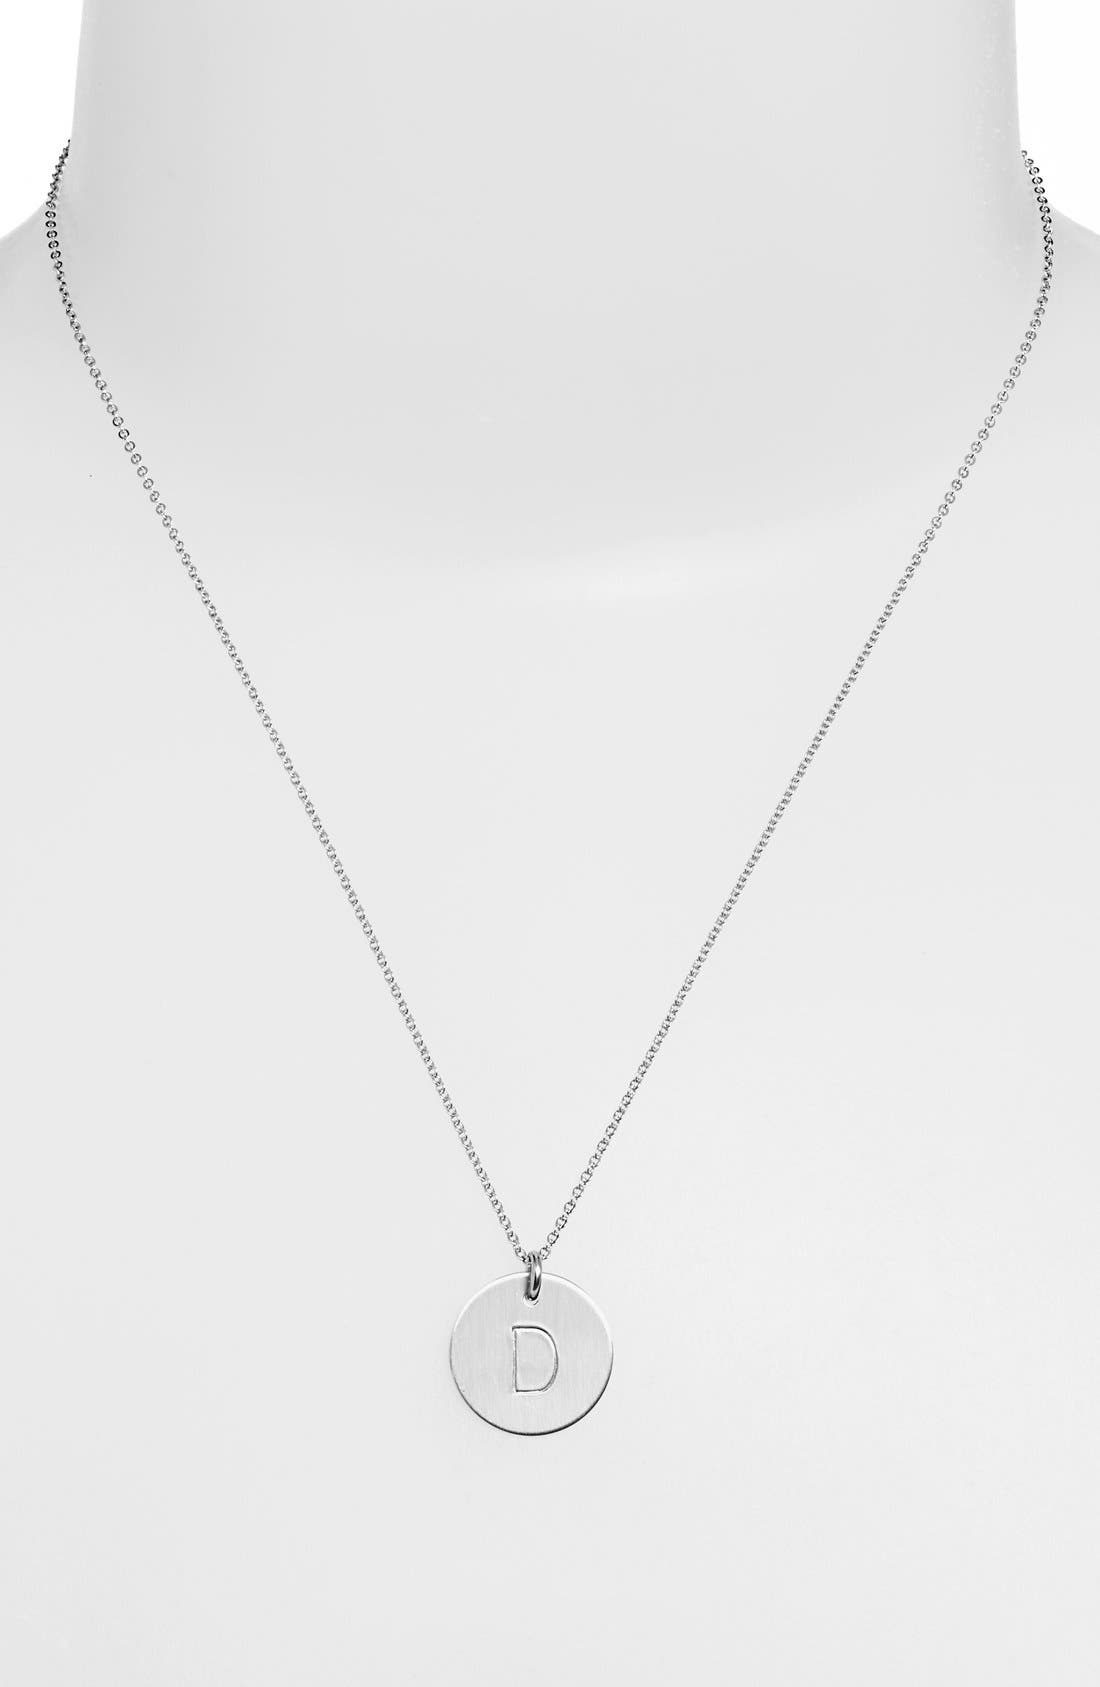 NASHELLE, Sterling Silver Initial Disc Necklace, Main thumbnail 1, color, STERLING SILVER D